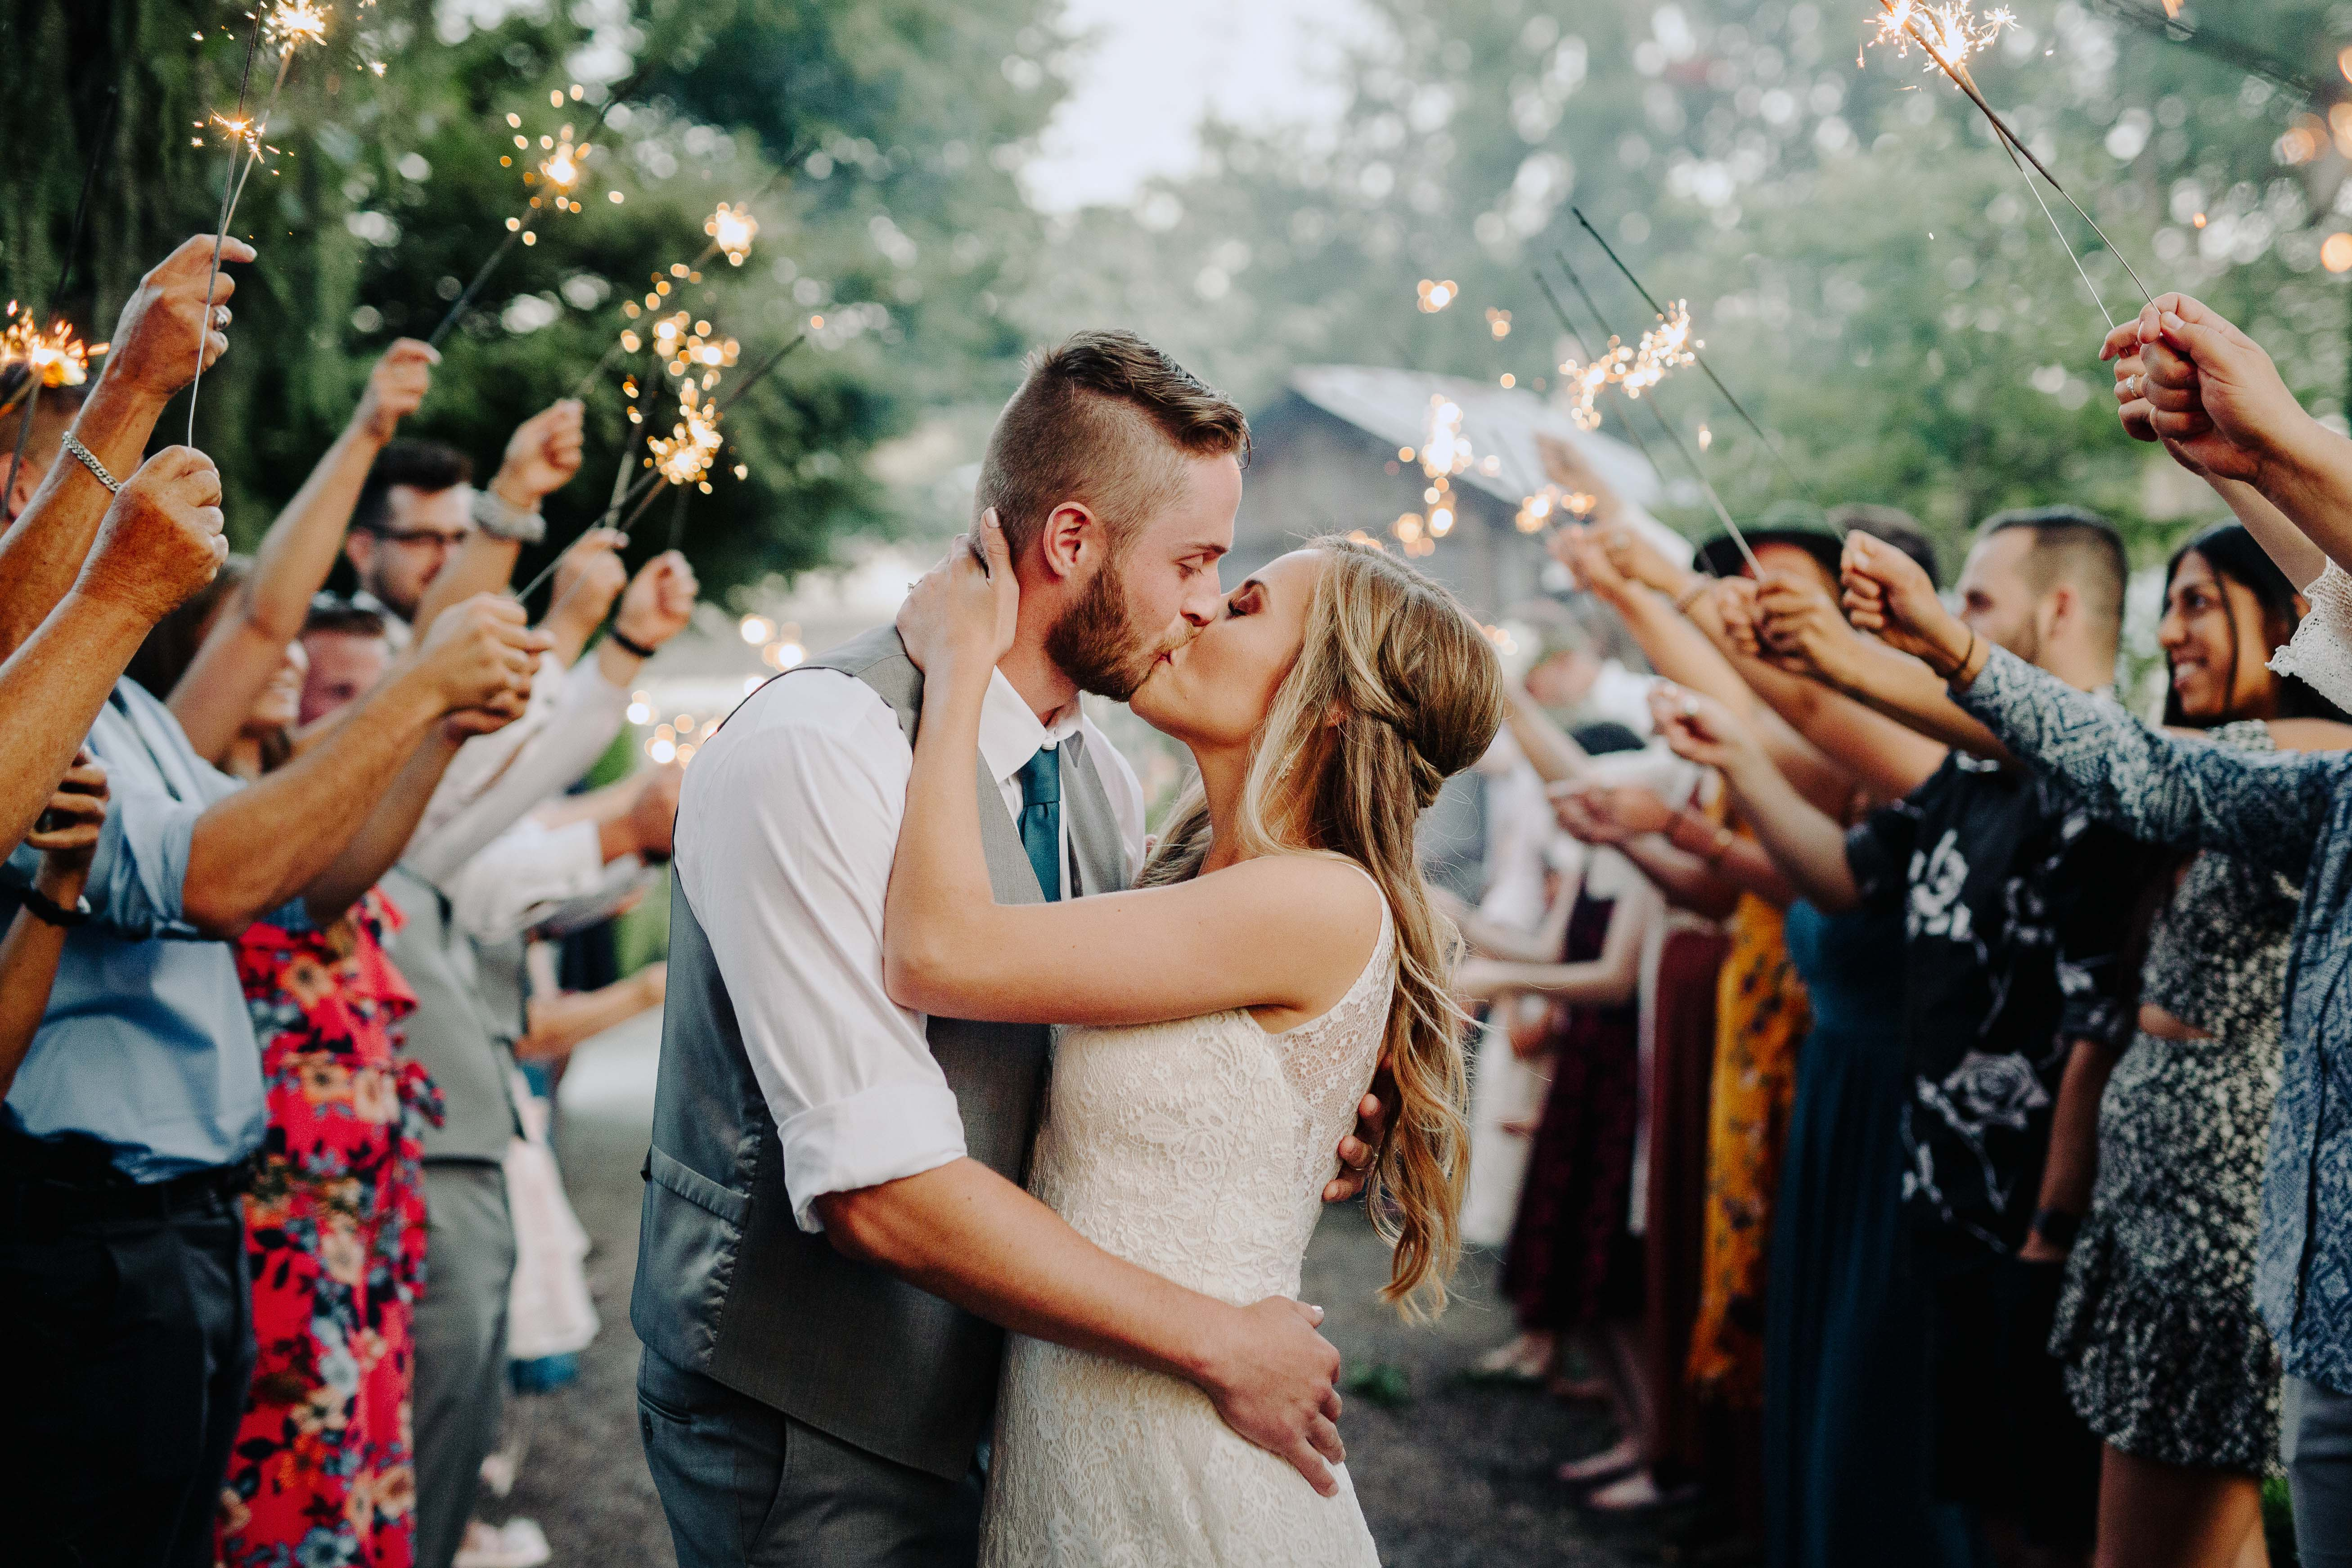 bride-and-groom-kiss-at-sparkler-exit-photo-by-cameron-zegers-photography